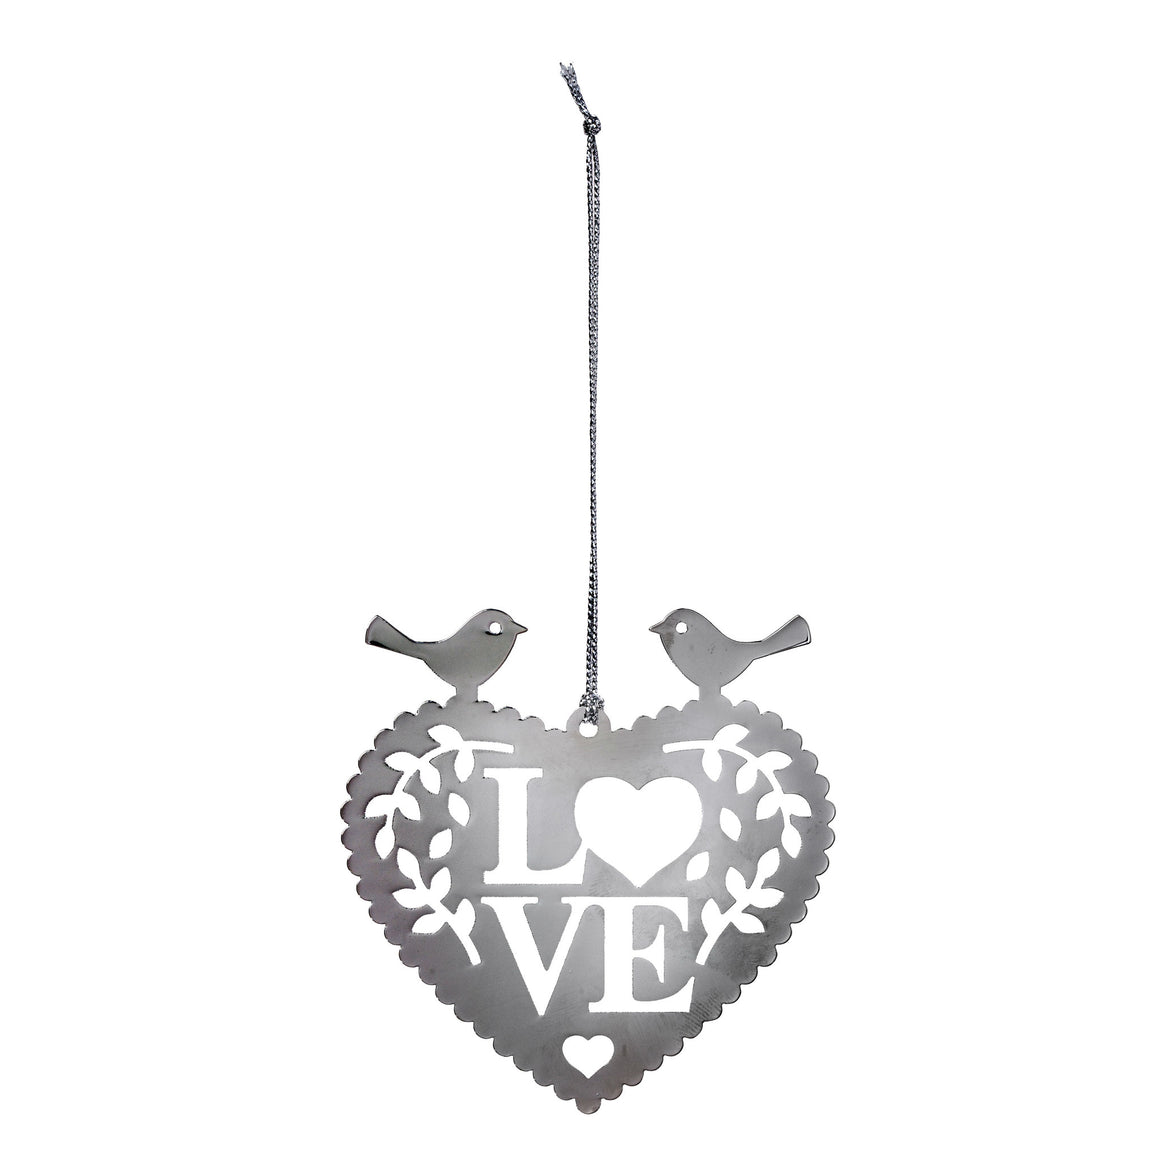 Leafy Love Bird Heart Decoration - The Love Trees